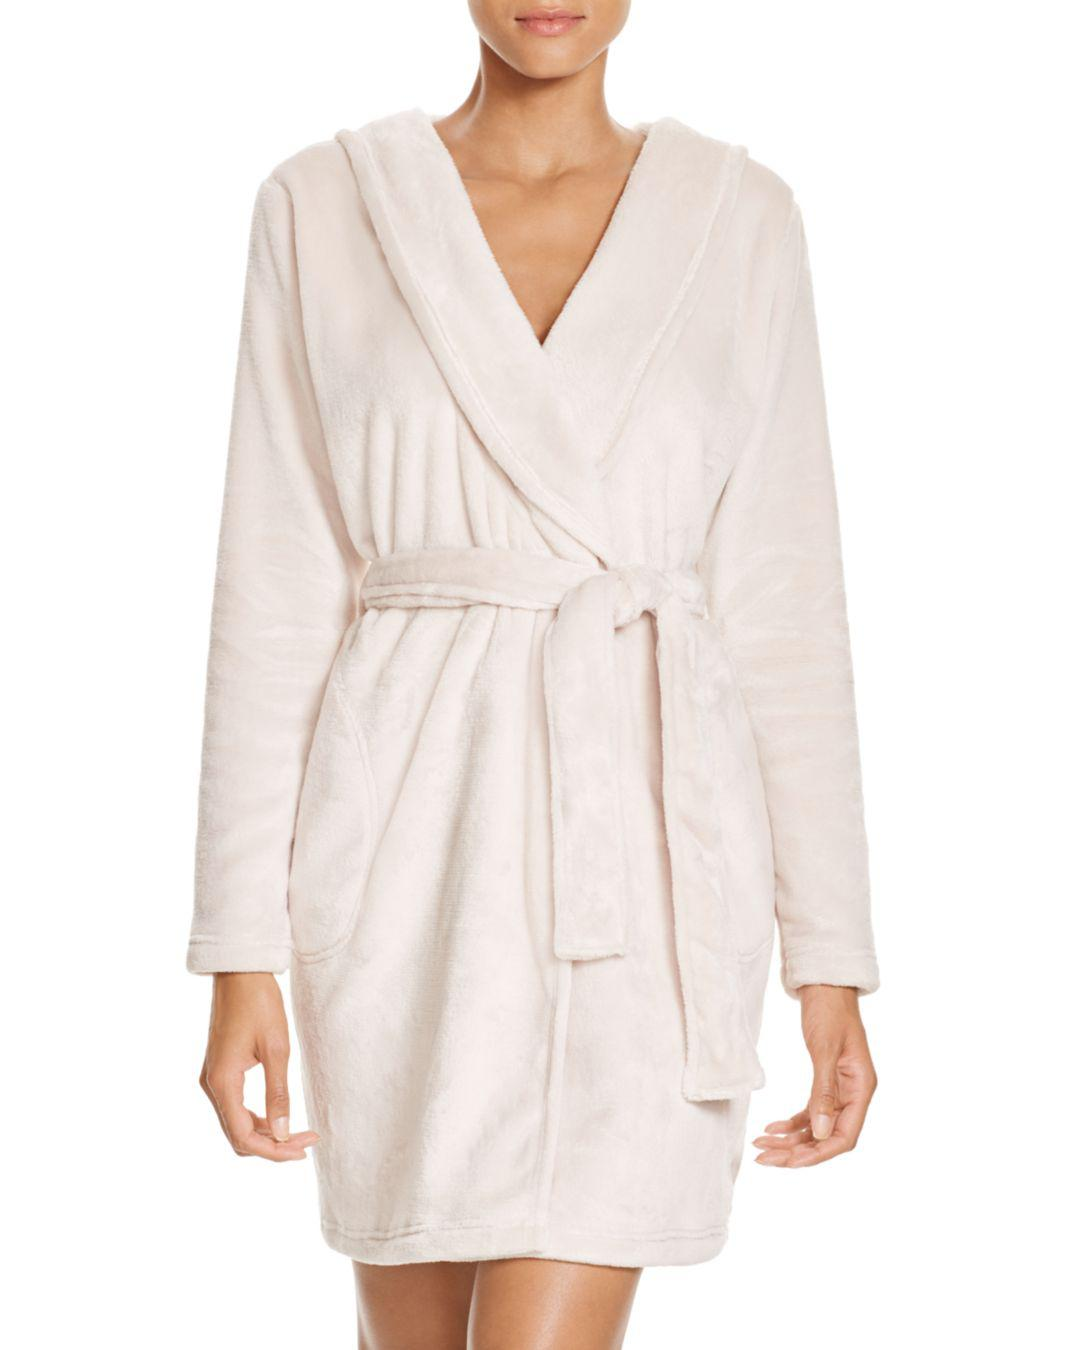 Lyst - UGG Australia Miranda Double Face Fleece Hooded Robe in Natural f68292718